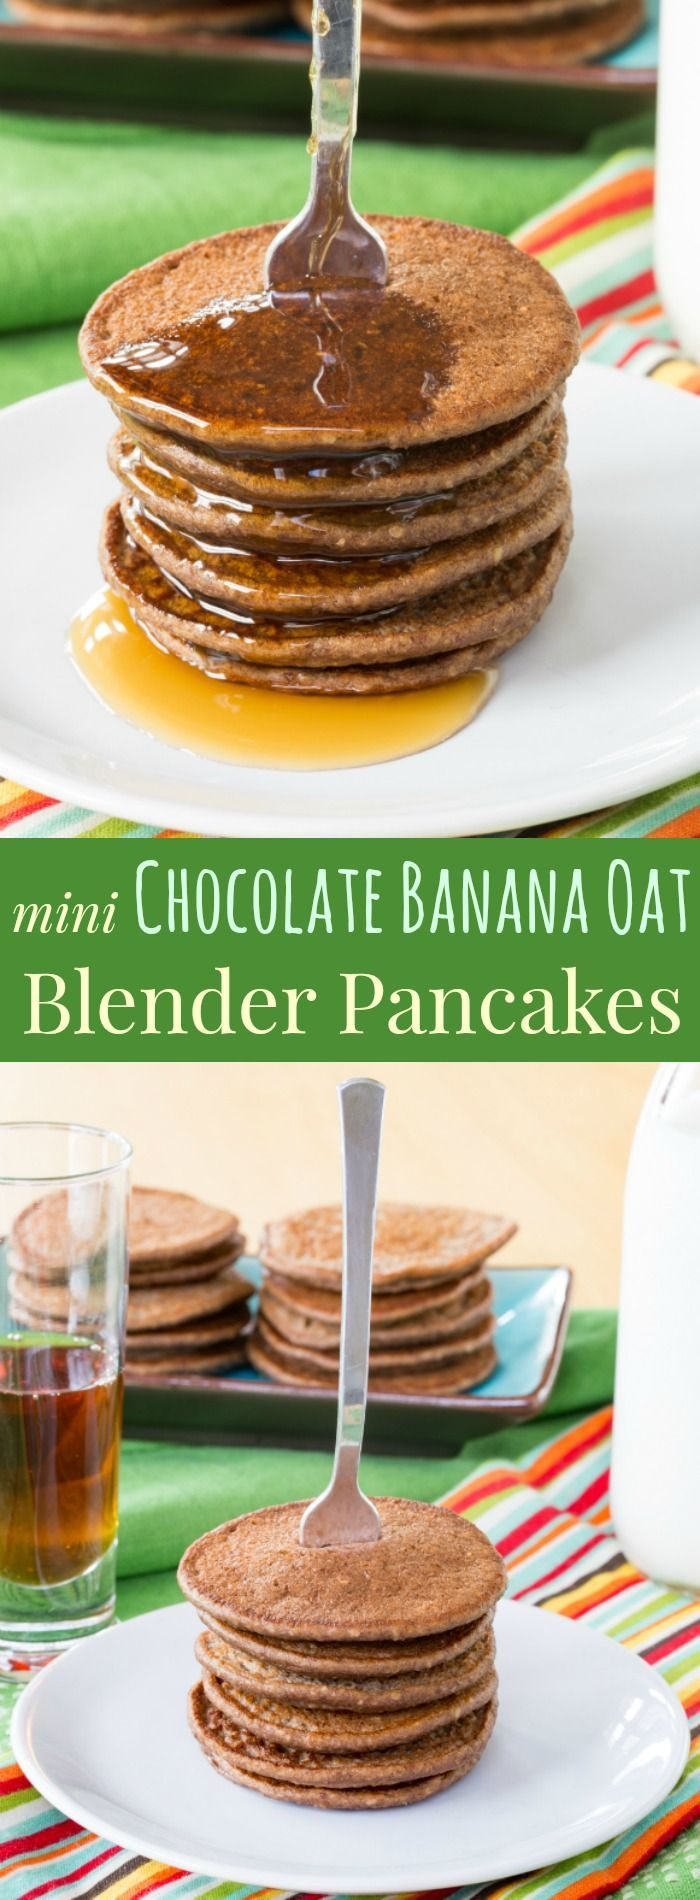 Mini Chocolate Banana Oat Blender Pancakes - an easy pancake recipe that's quick, healthy, and naturally gluten free.